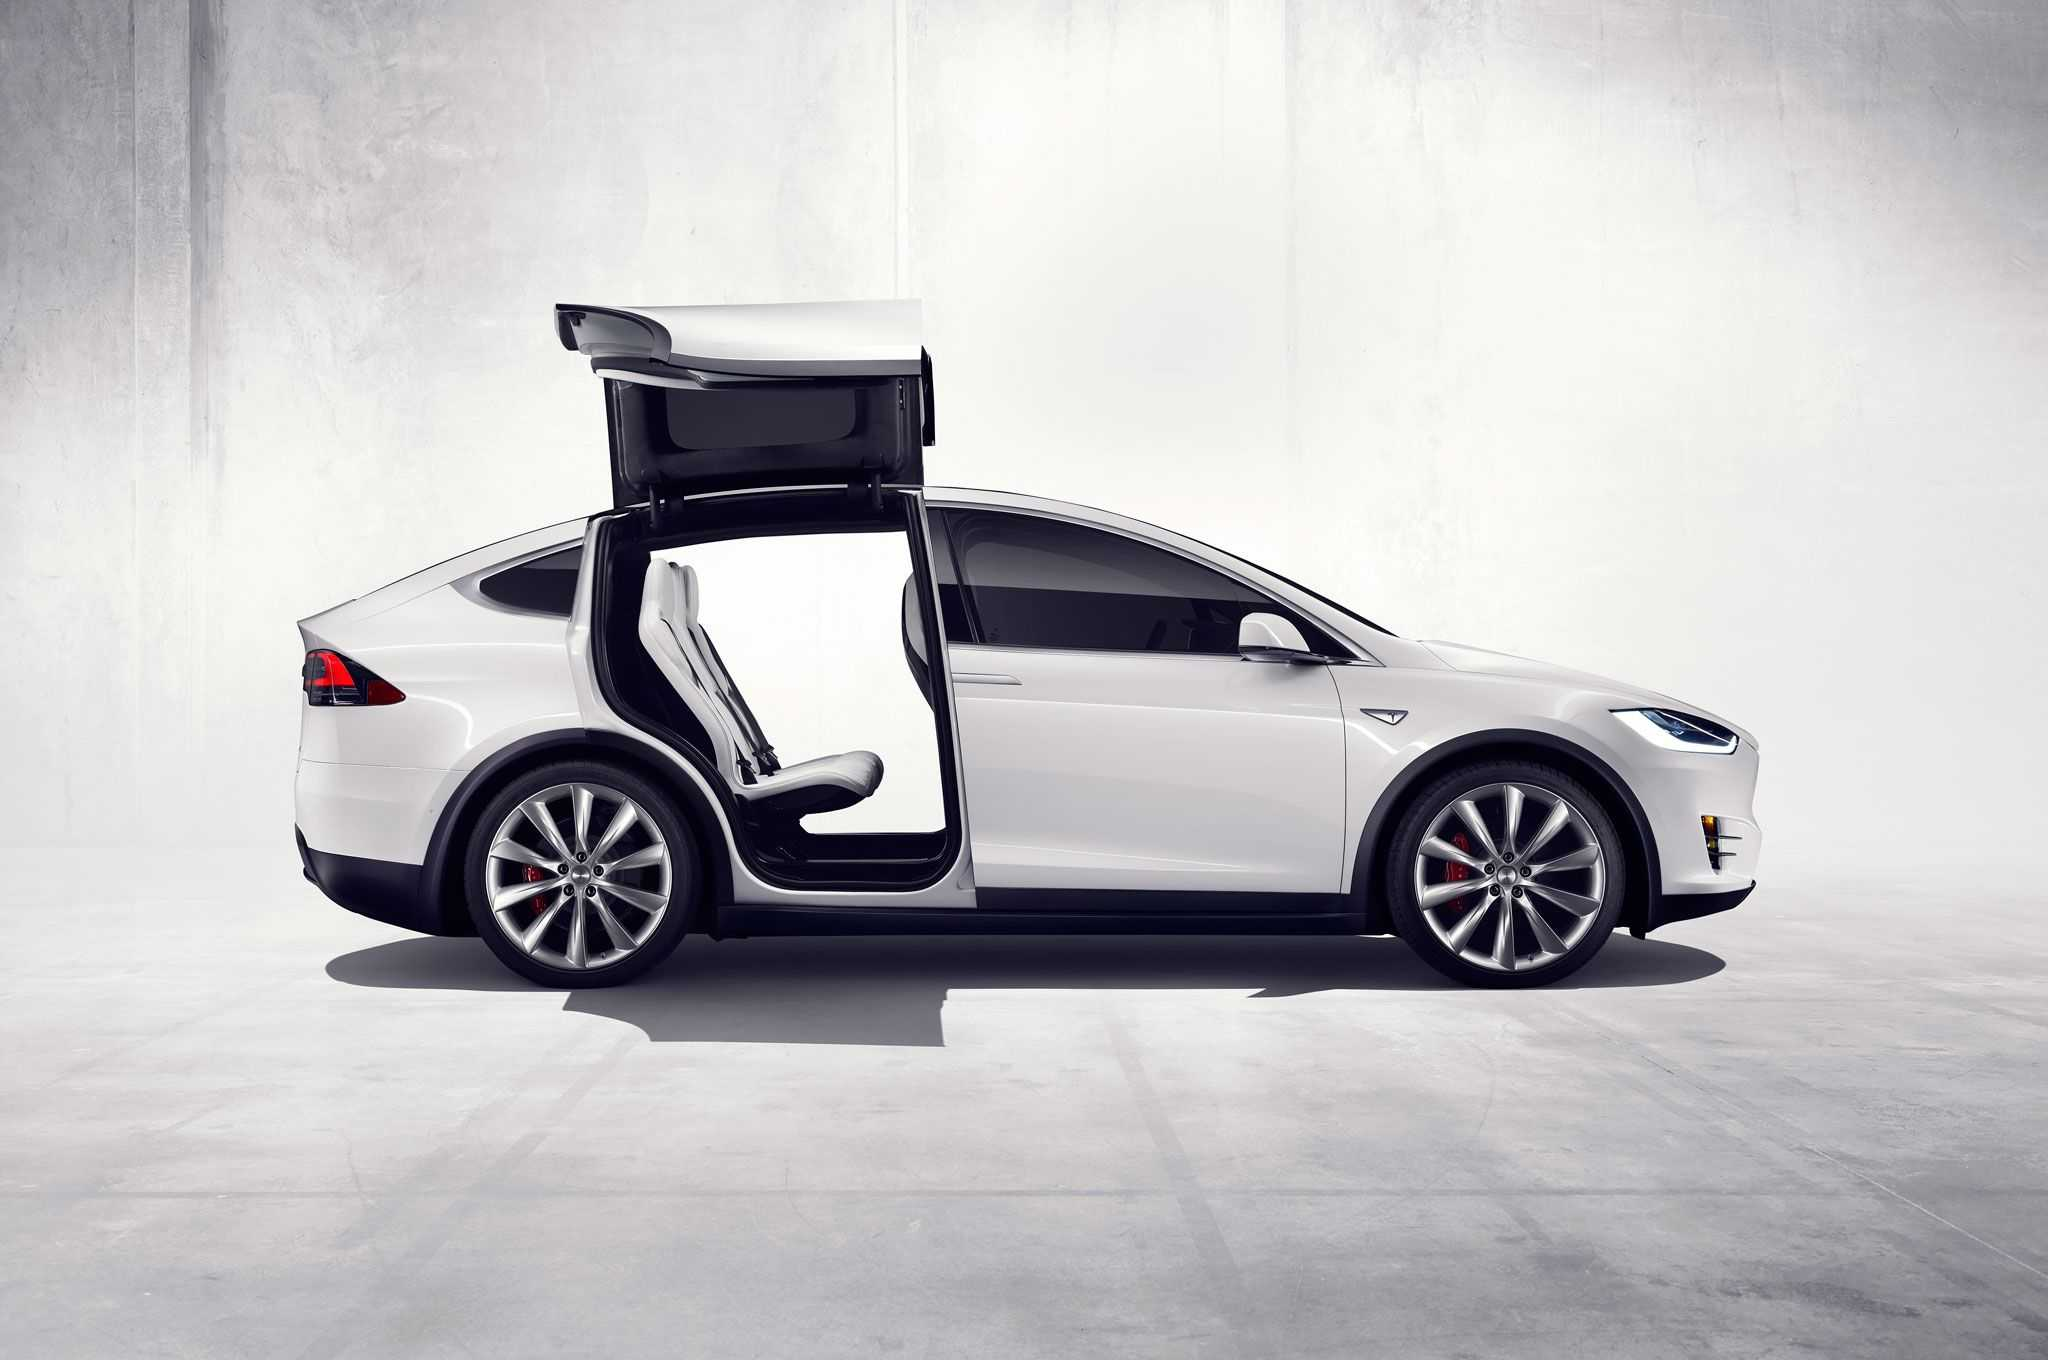 Tesla Model X Versus Jaguar F Pace Should Tesla Be Afraid